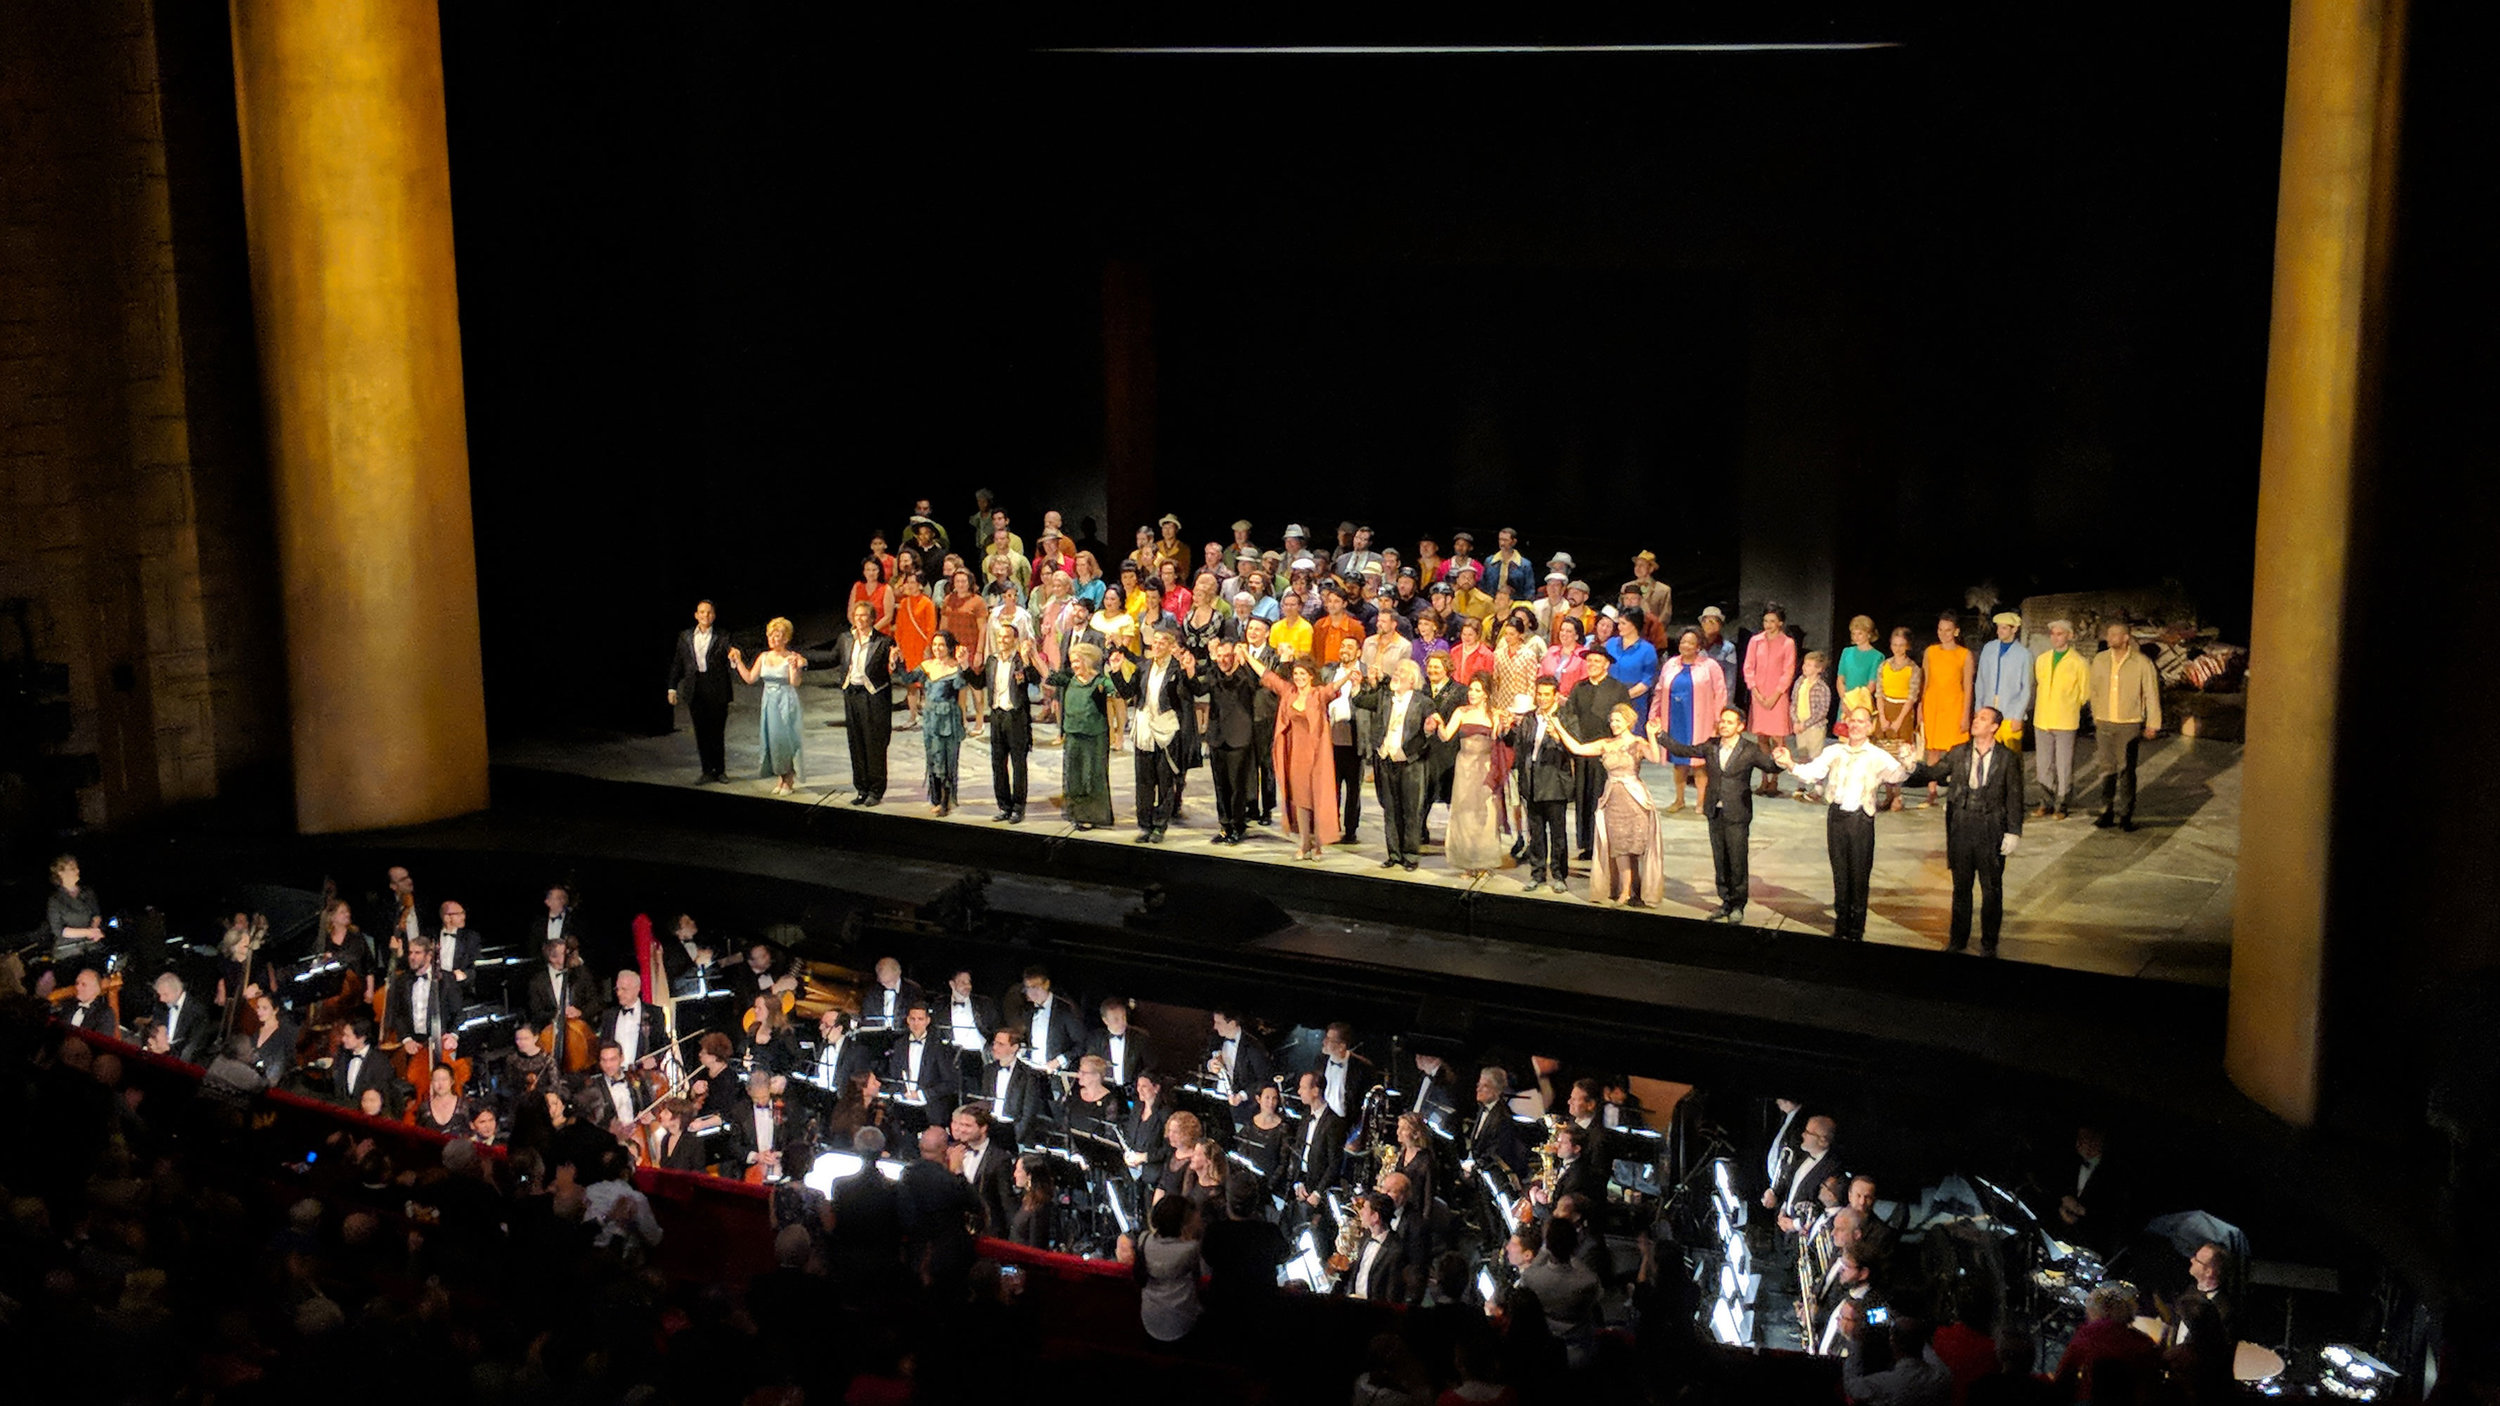 Curtain call after a performance of The Exterminating Angel, by Thomas Adès, at The Metropolitan Opera